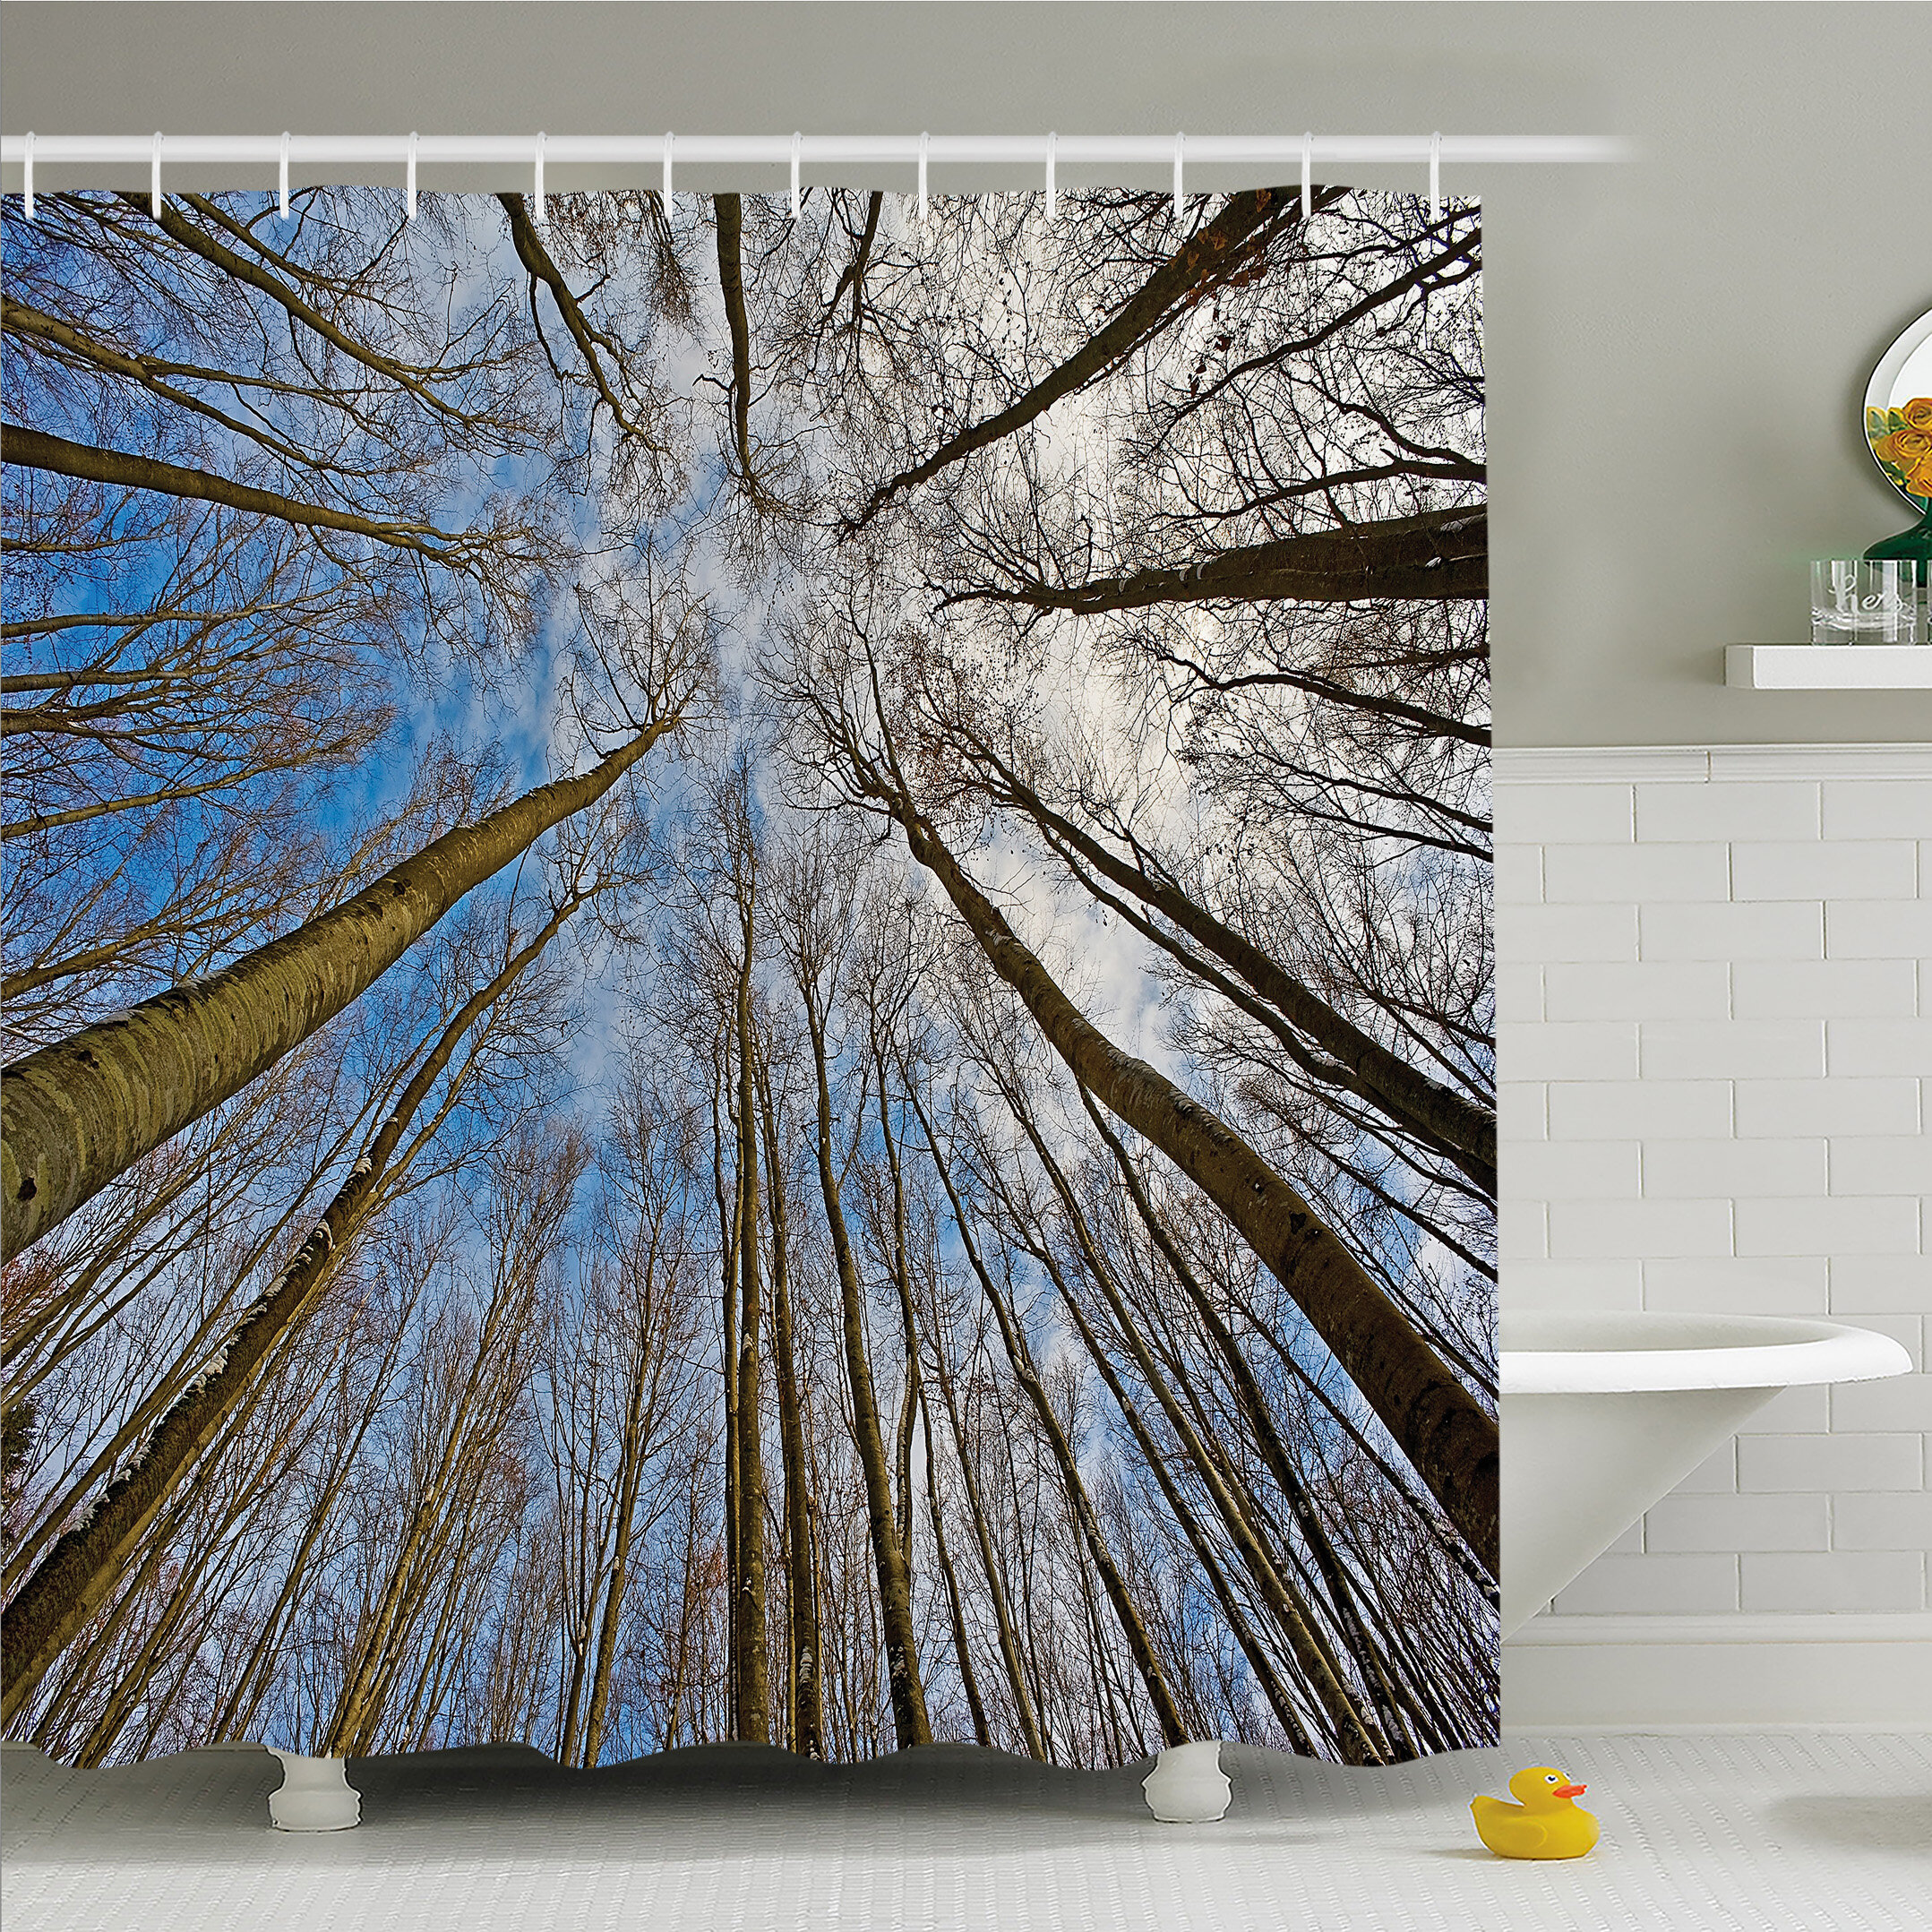 East Urban Home Forest Home Leafless Twiggy Tree Trunk Cloudy Morning Light Shower Curtain Set Wayfair